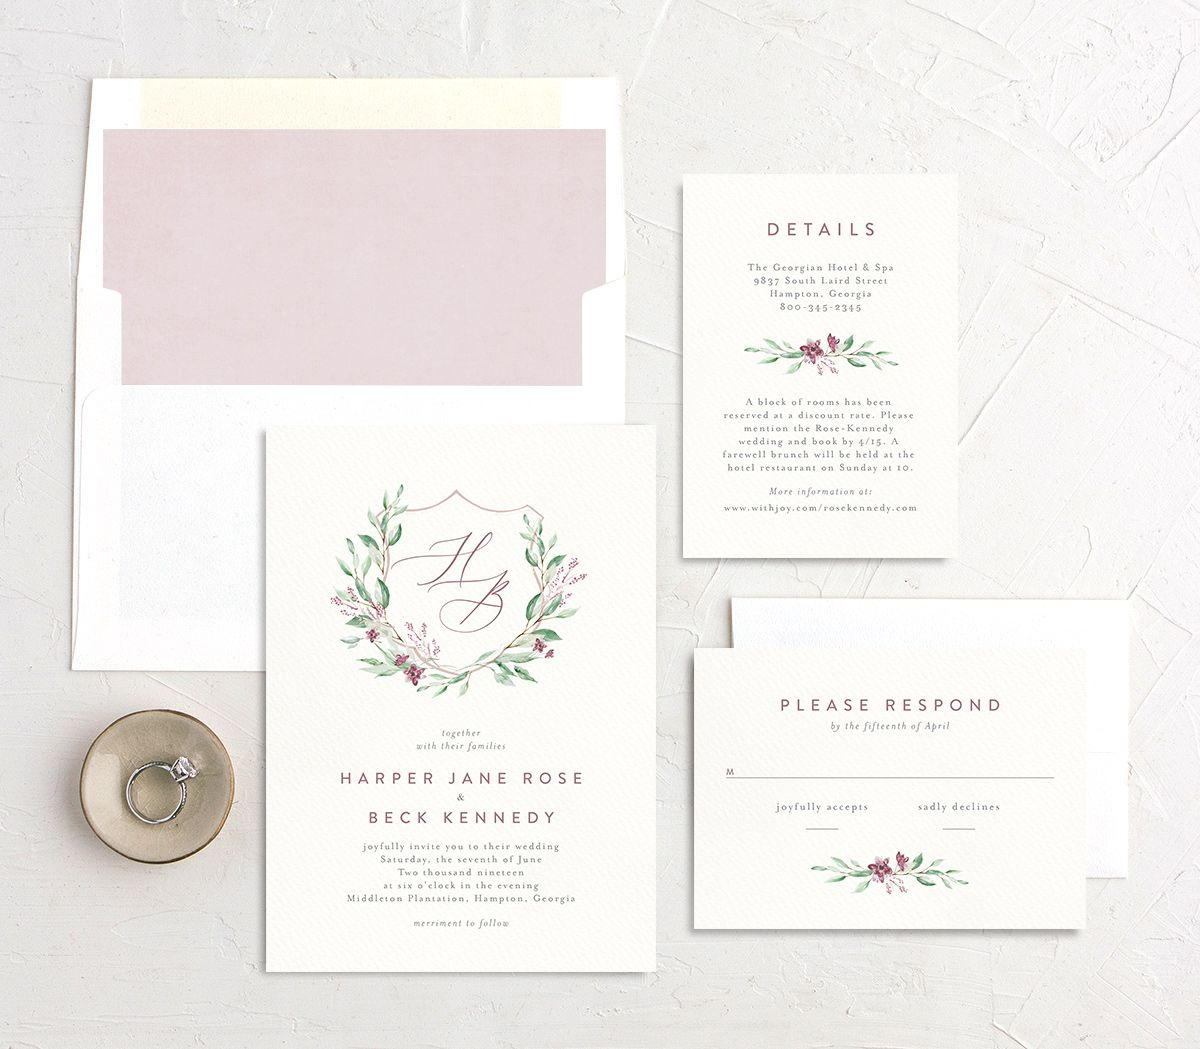 watercolor crest wedding invitation stationery suite in pink